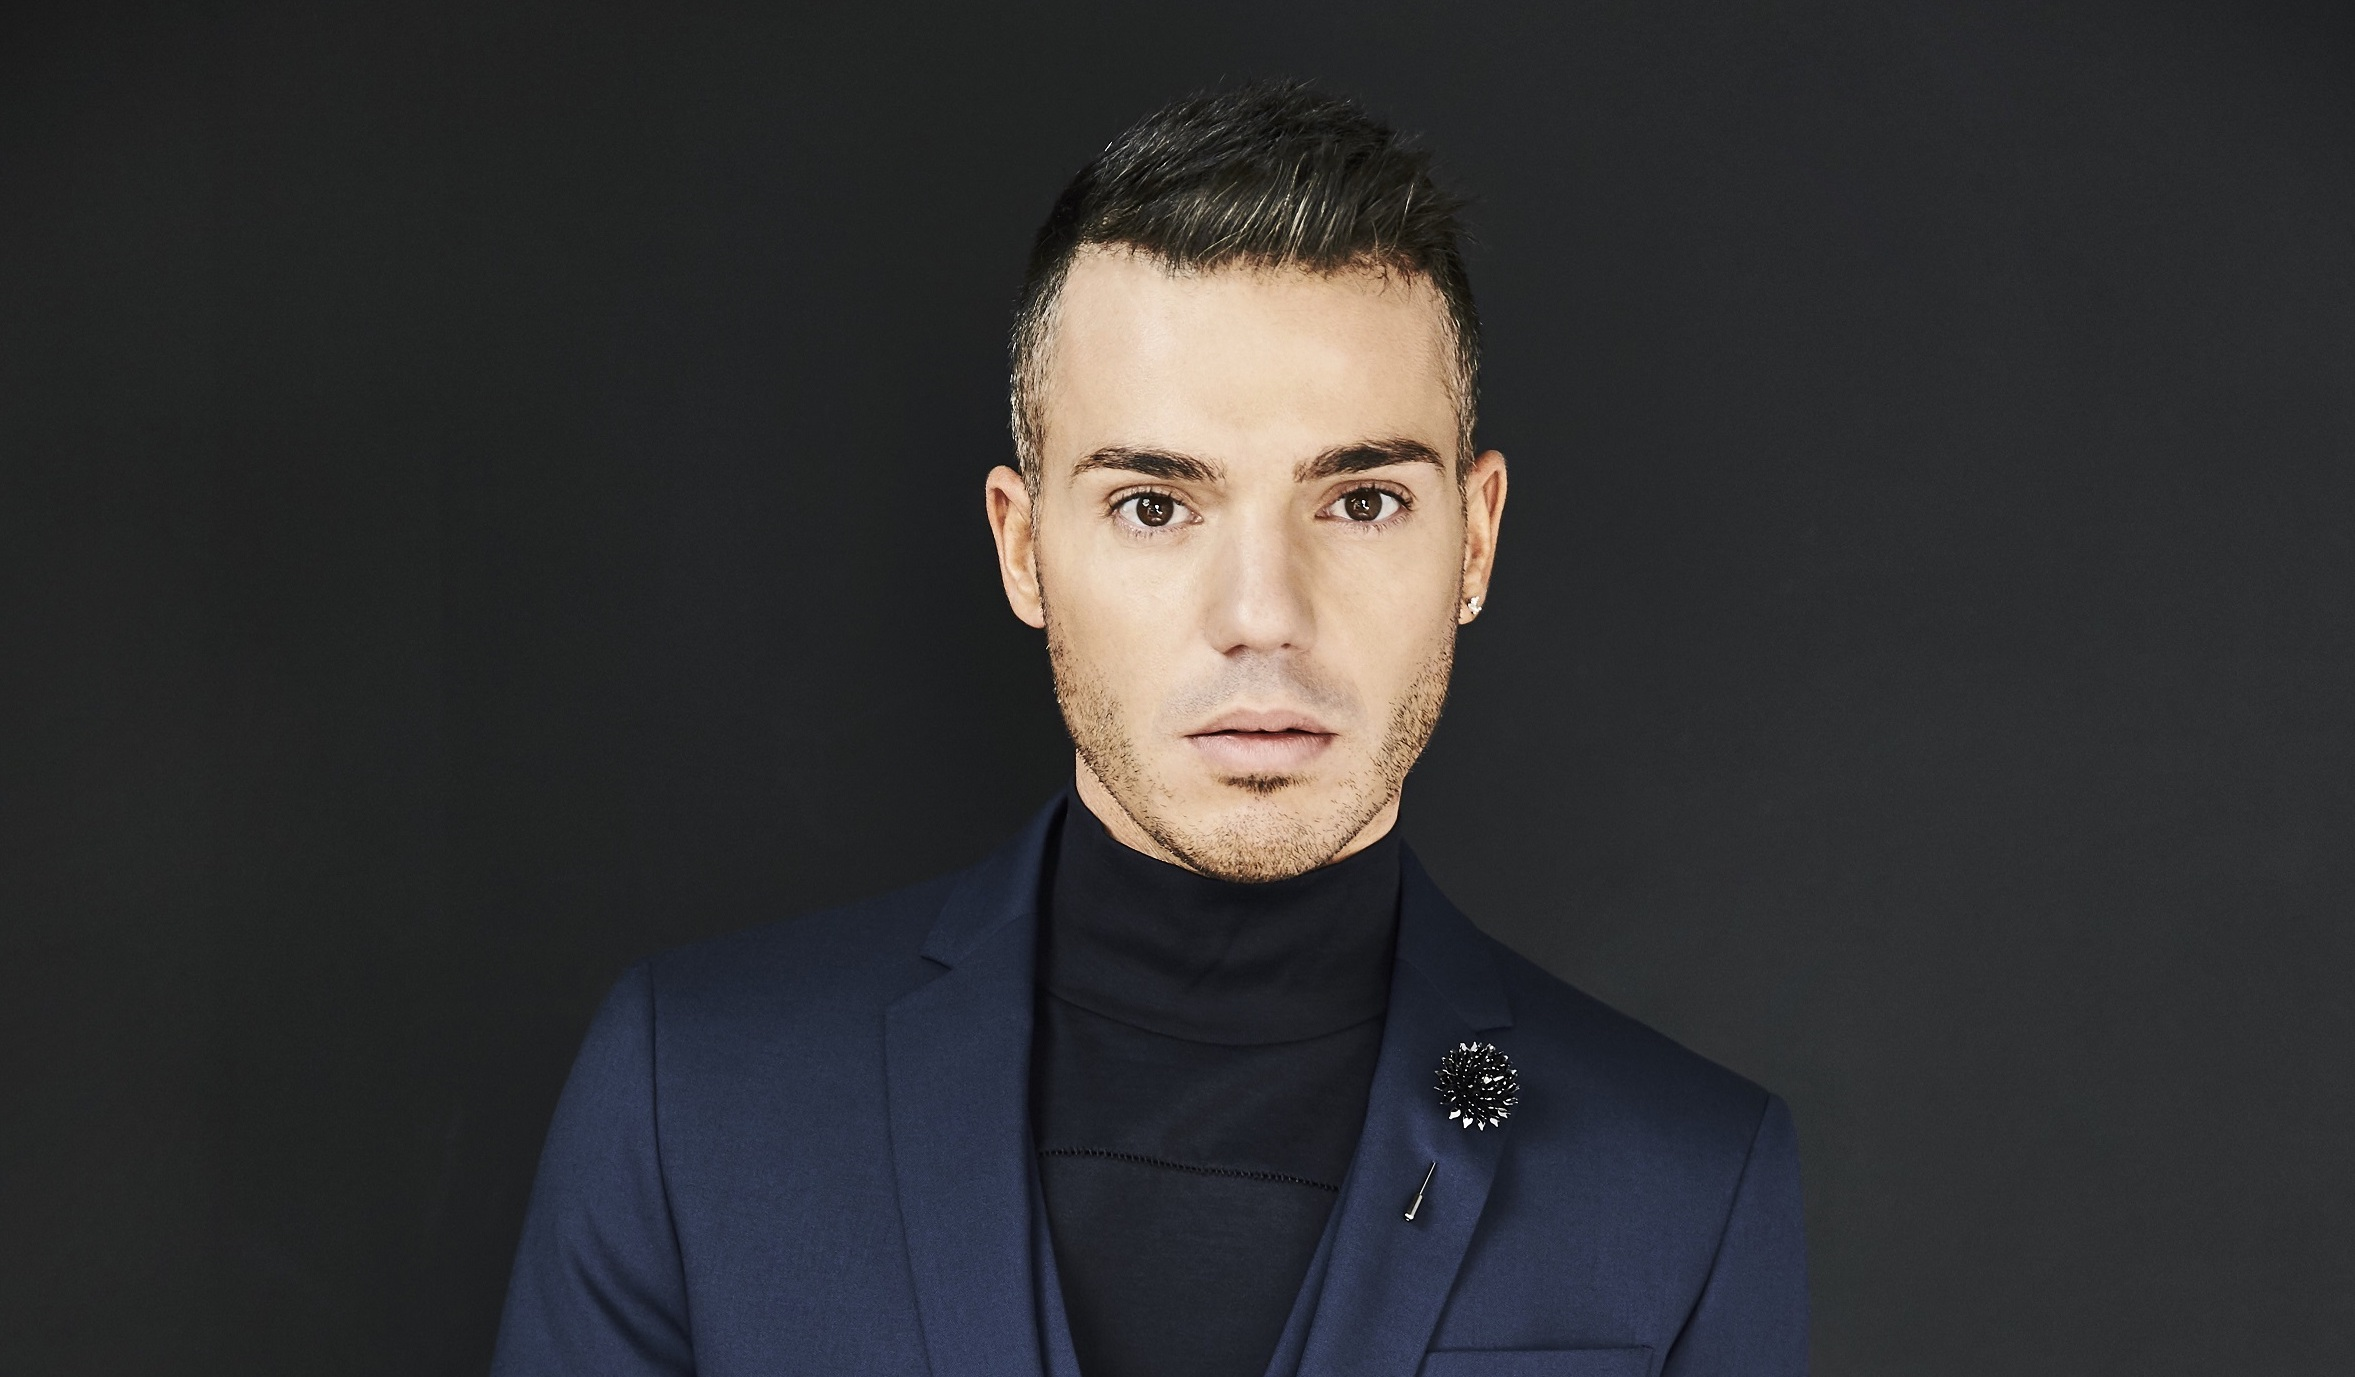 ANTHONY CALLEA'S ARIA NUMBER 1 HITS IN SYMPHONY DEBUTS AT #1 ON THE ARIA ALBUM CHART